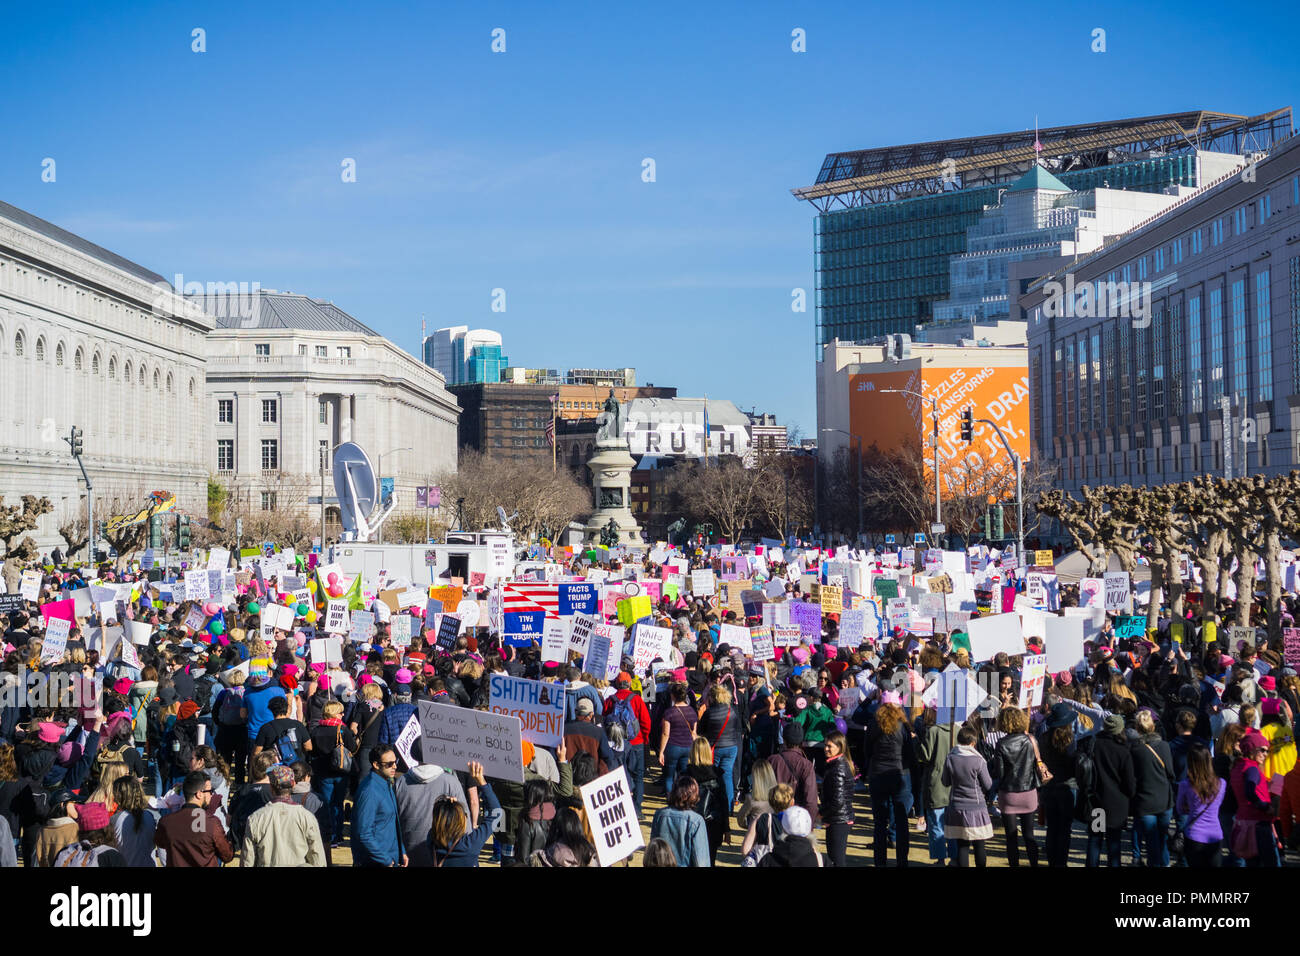 January 20, 2018 San Francisco / CA / USA - Participants at the Women's March leave the rally location and start marching - Stock Image